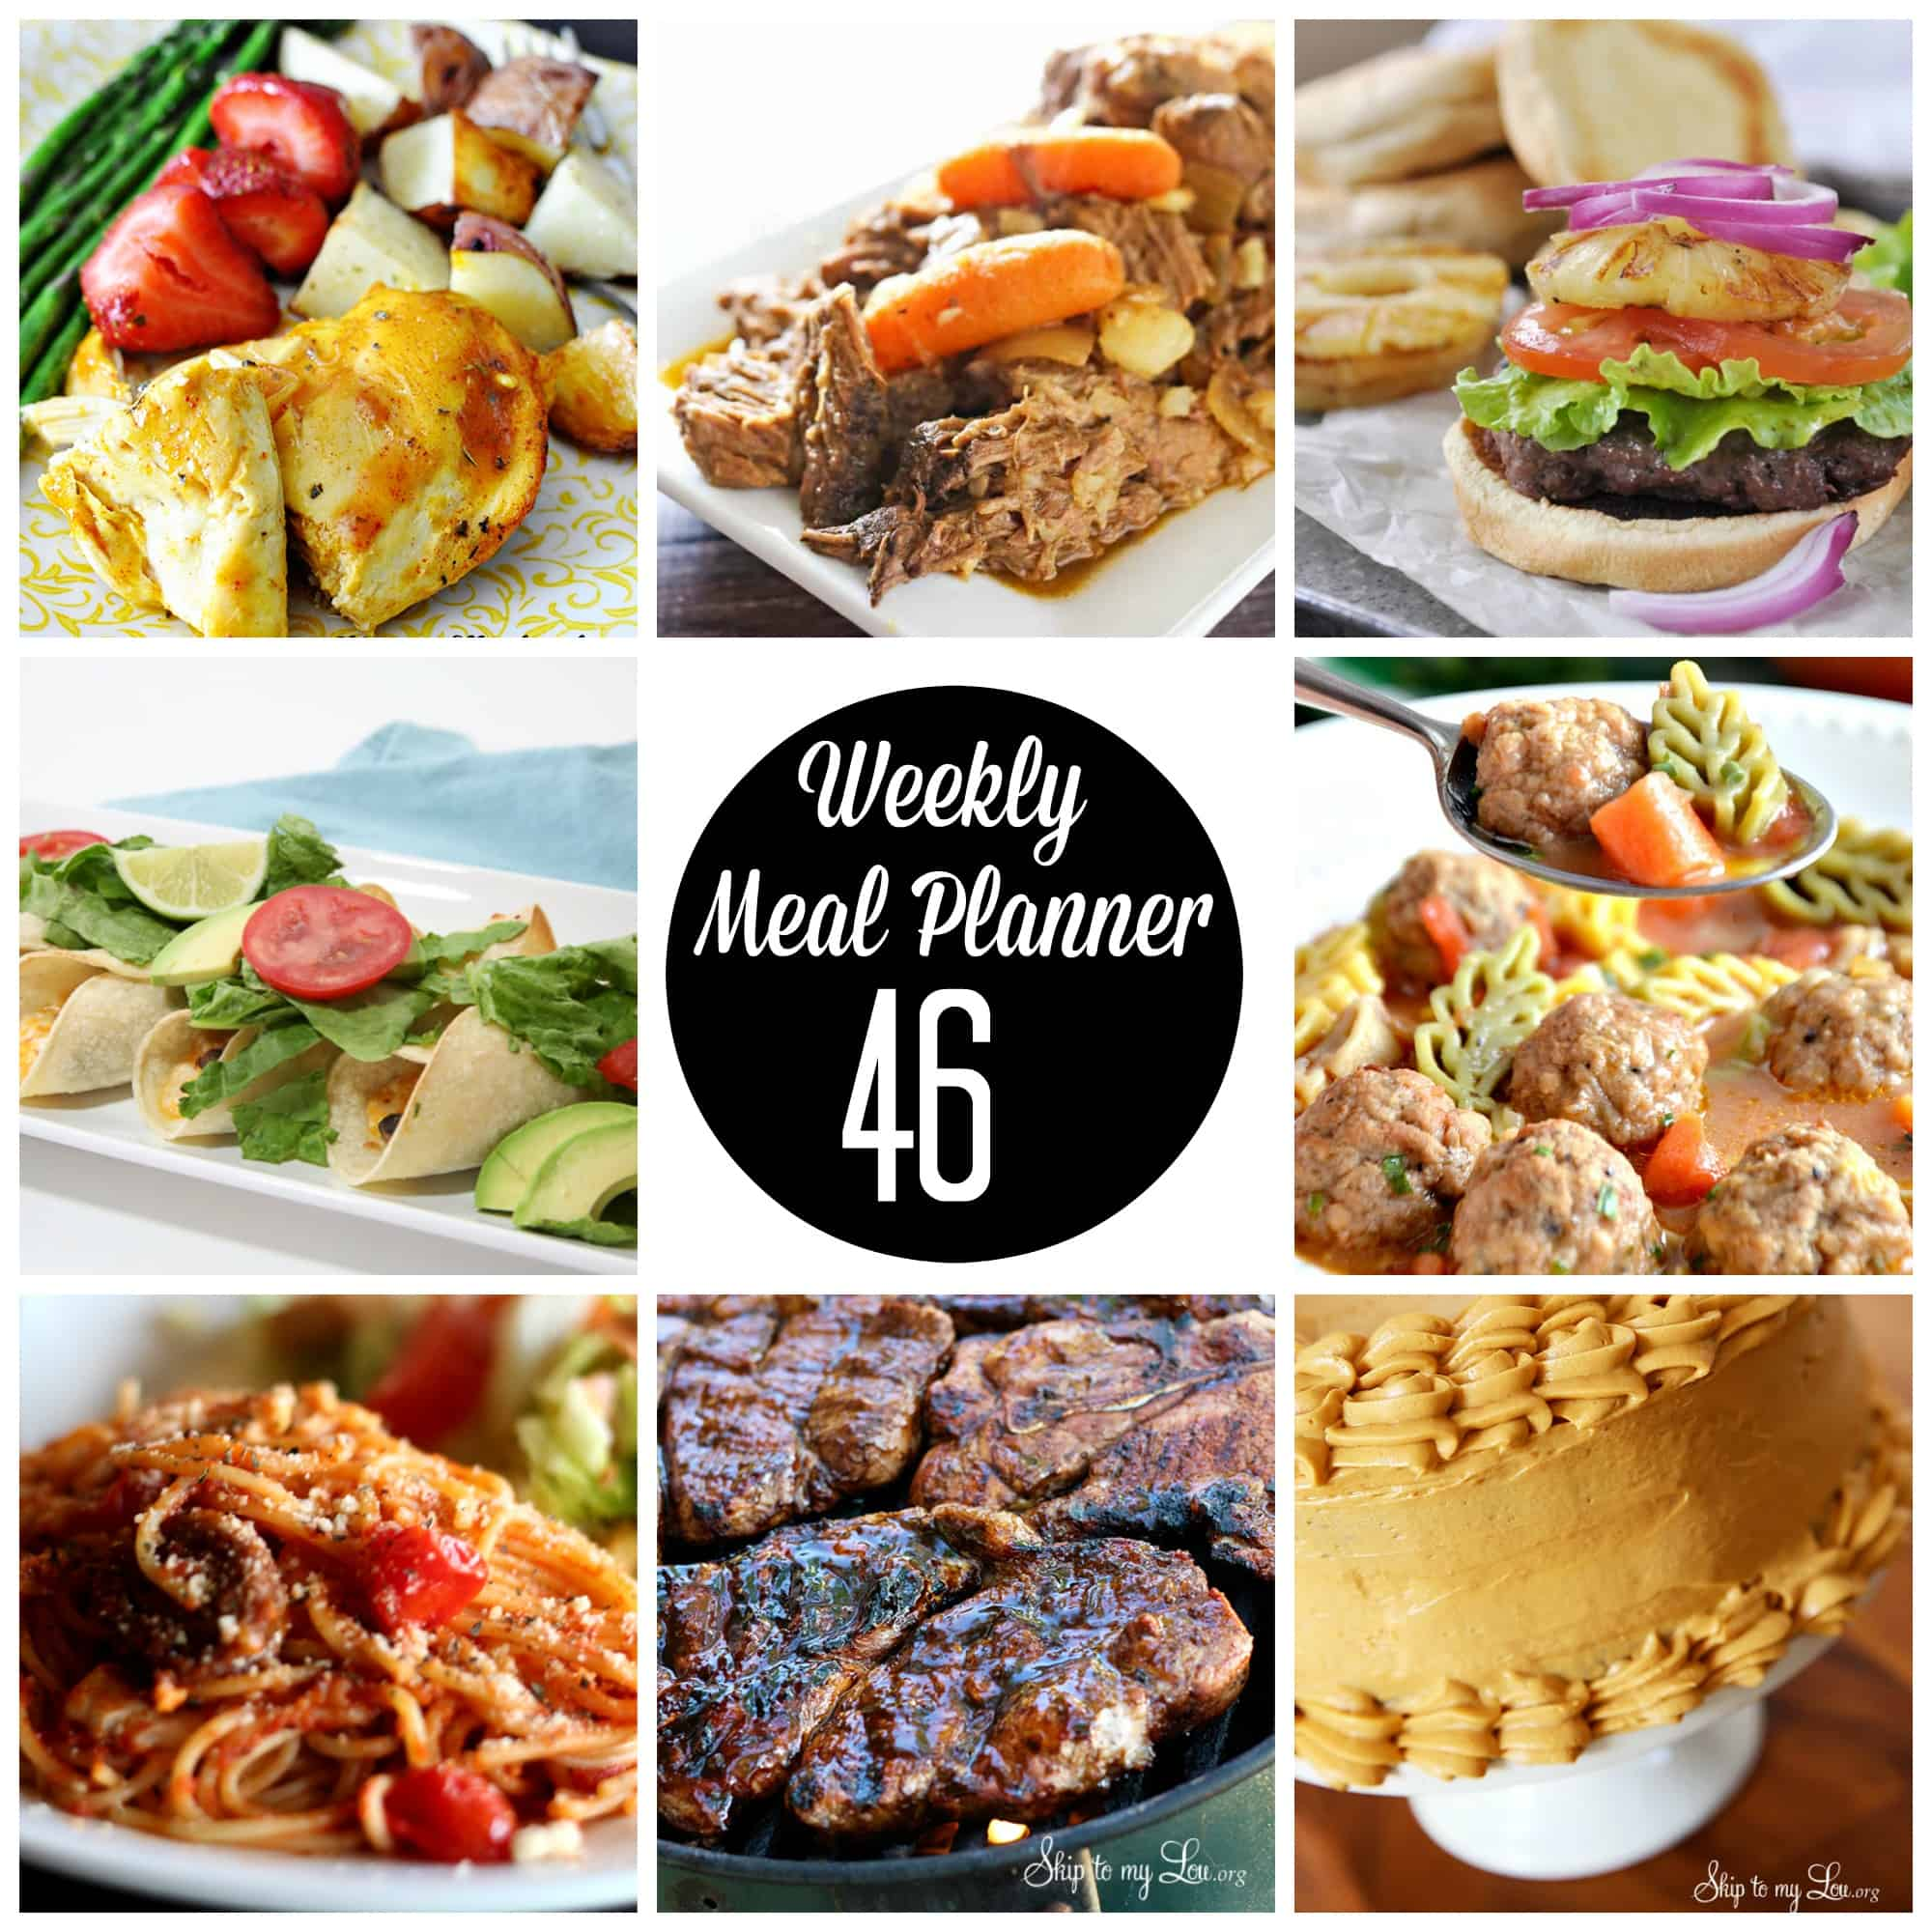 weeklymealplanner46square